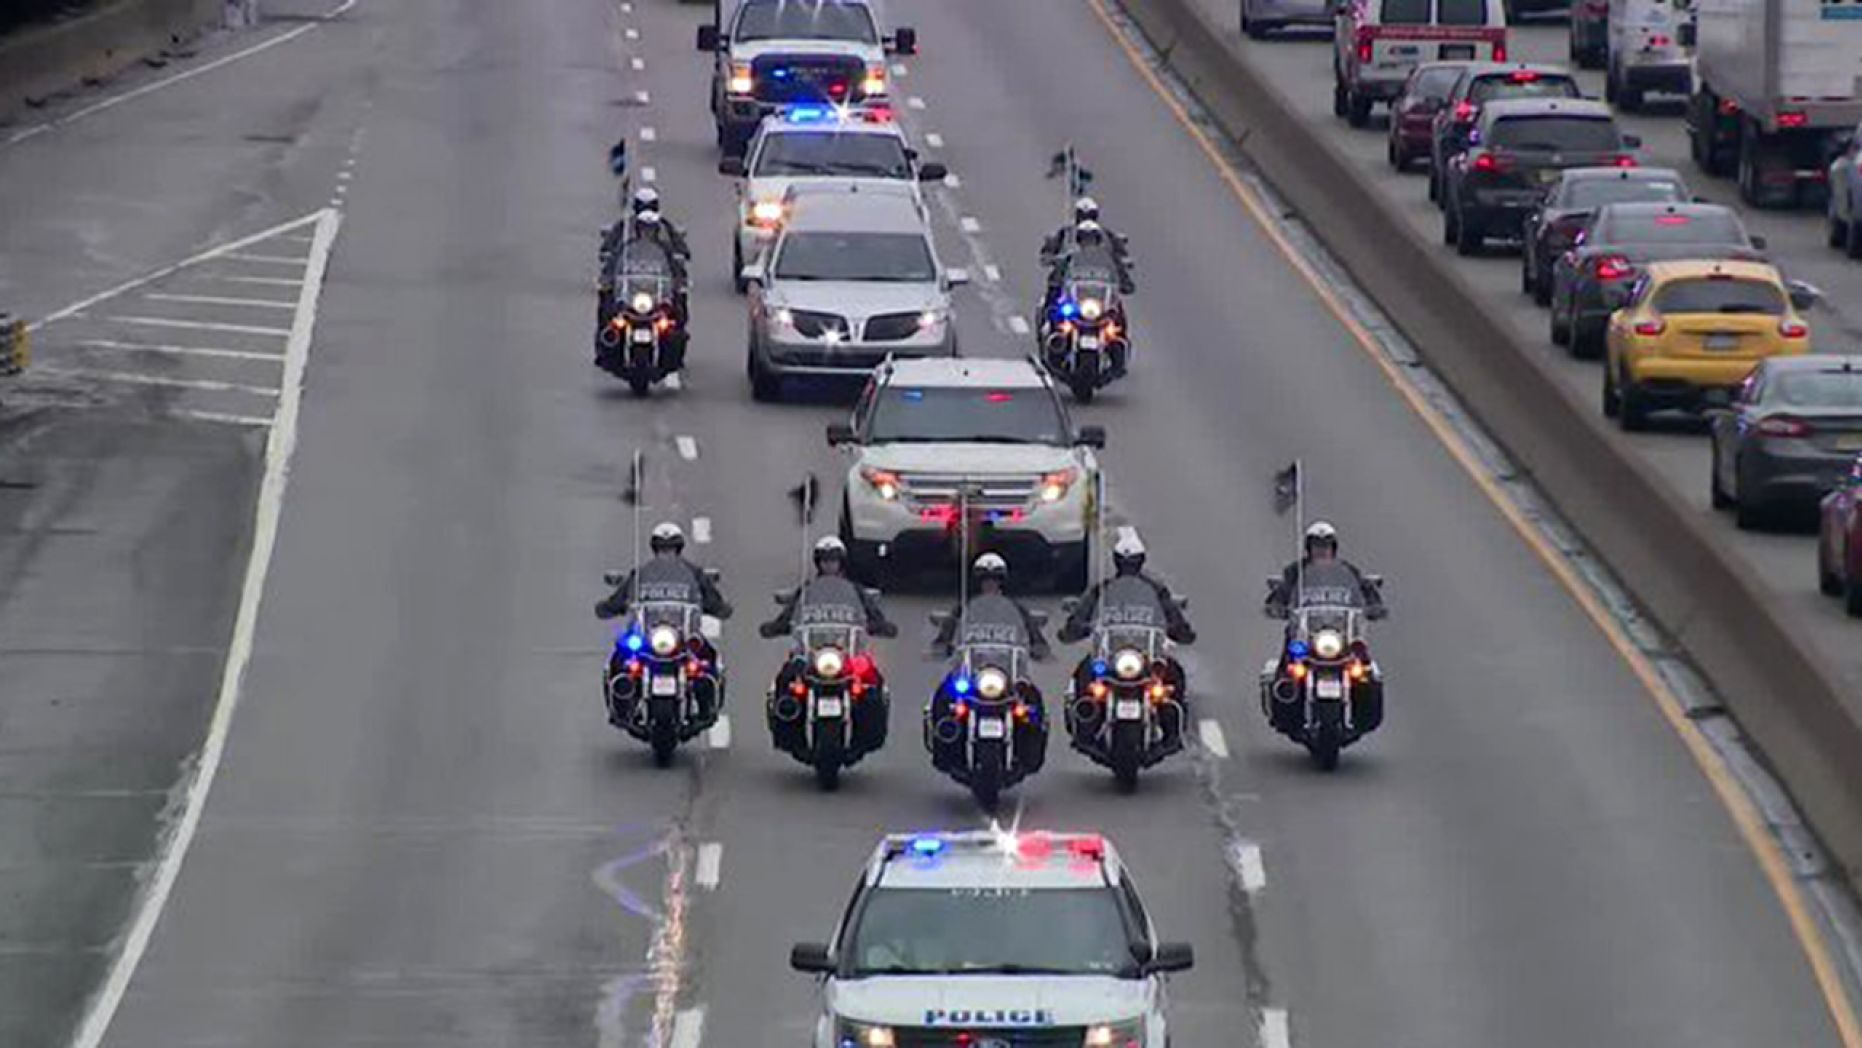 Members of the Philadelphia Police Department escorted the body of fallen officer James O'Connor from the hospital to the morgue